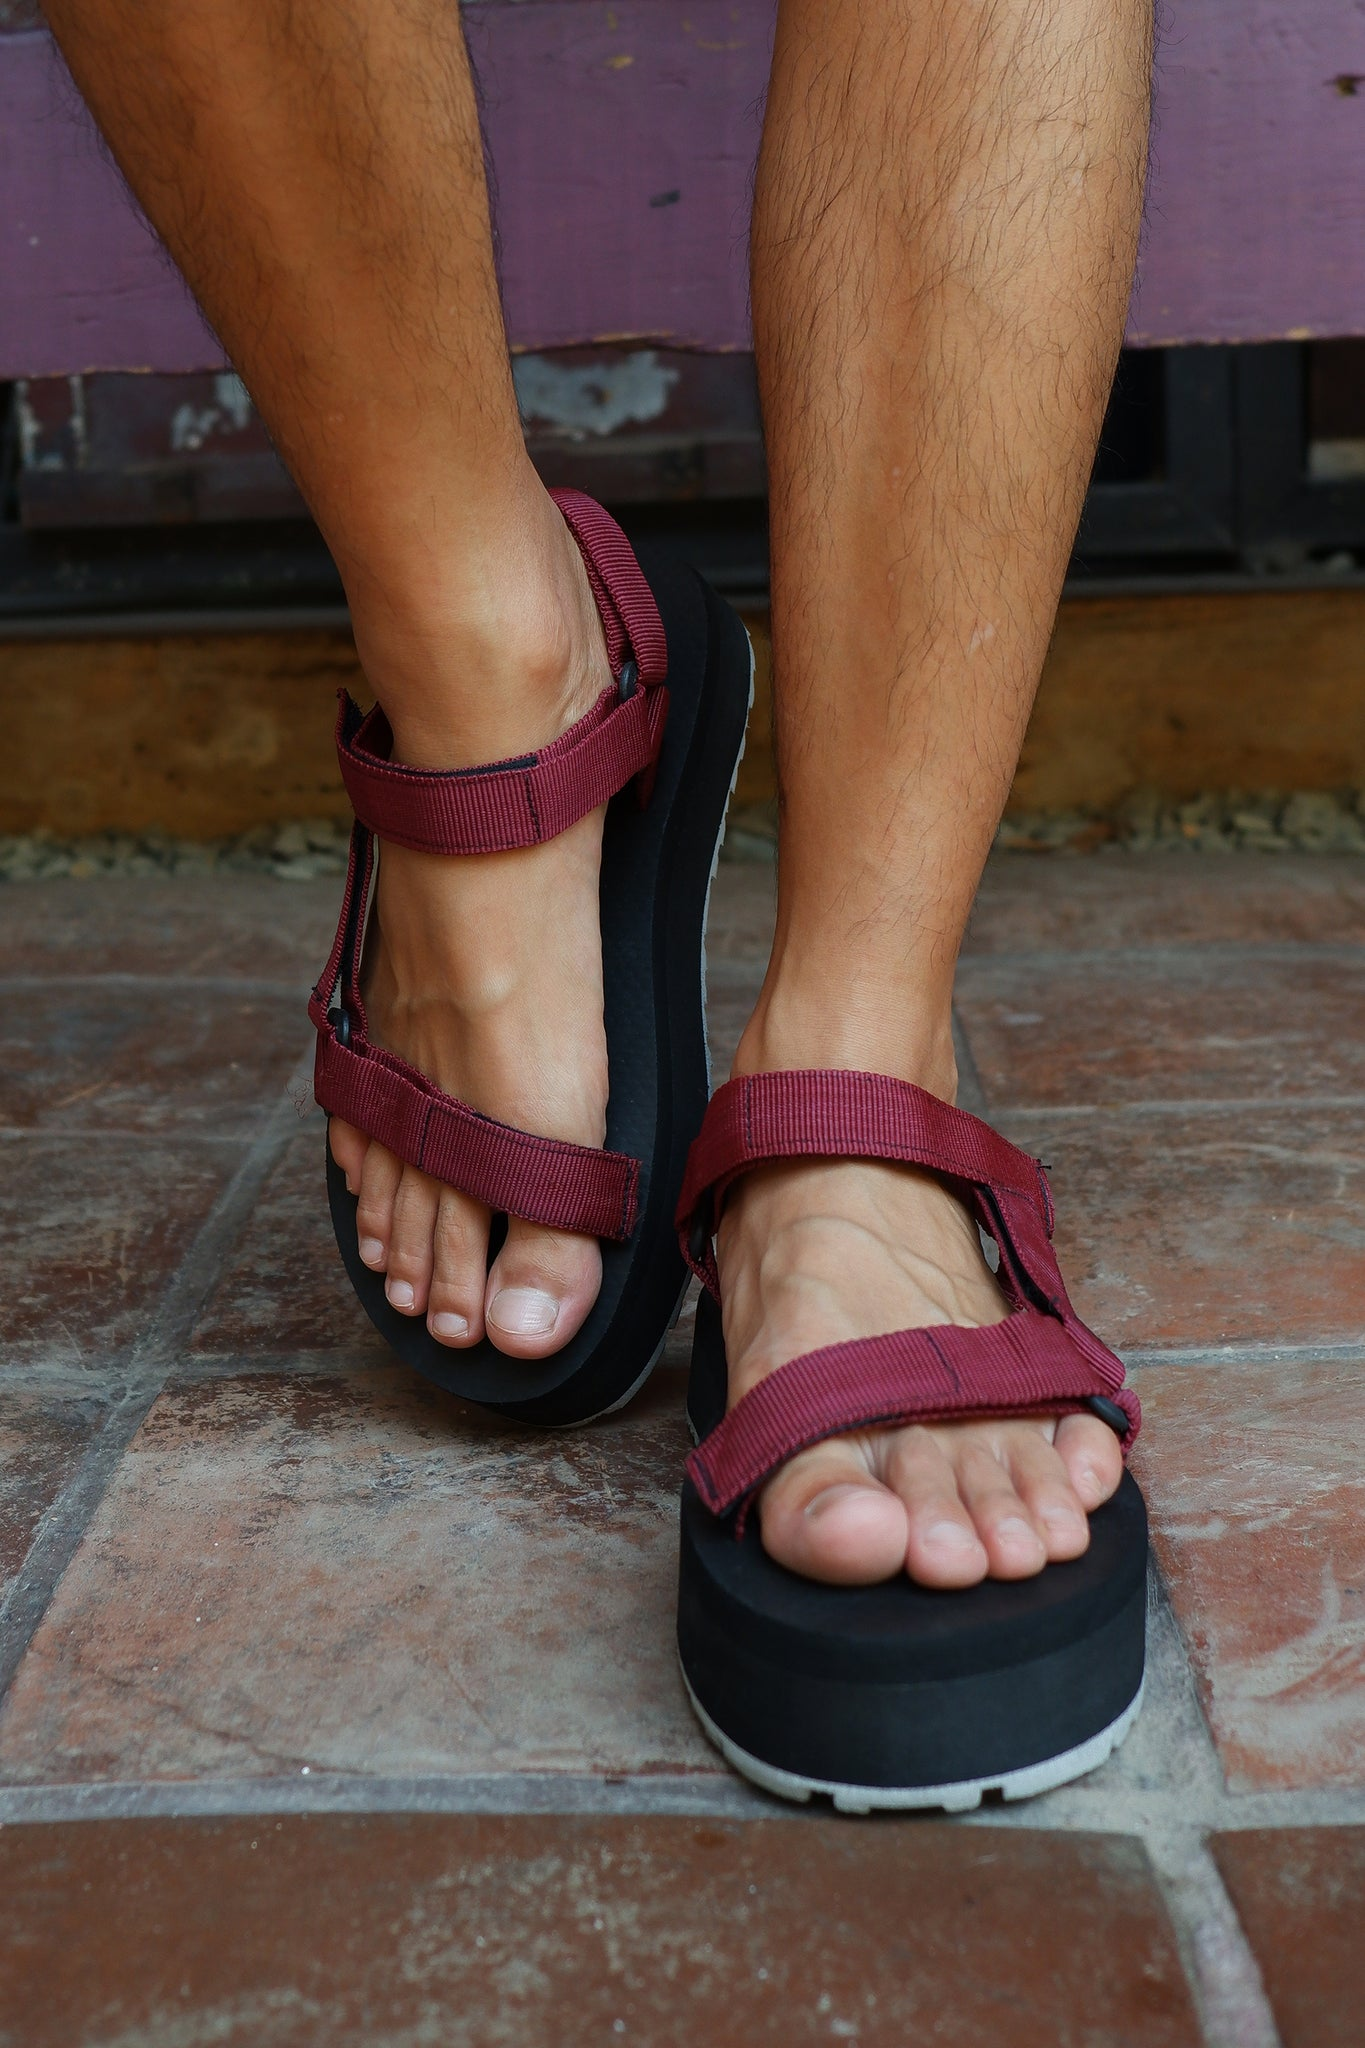 24mm Sporty Sandals in Maroon